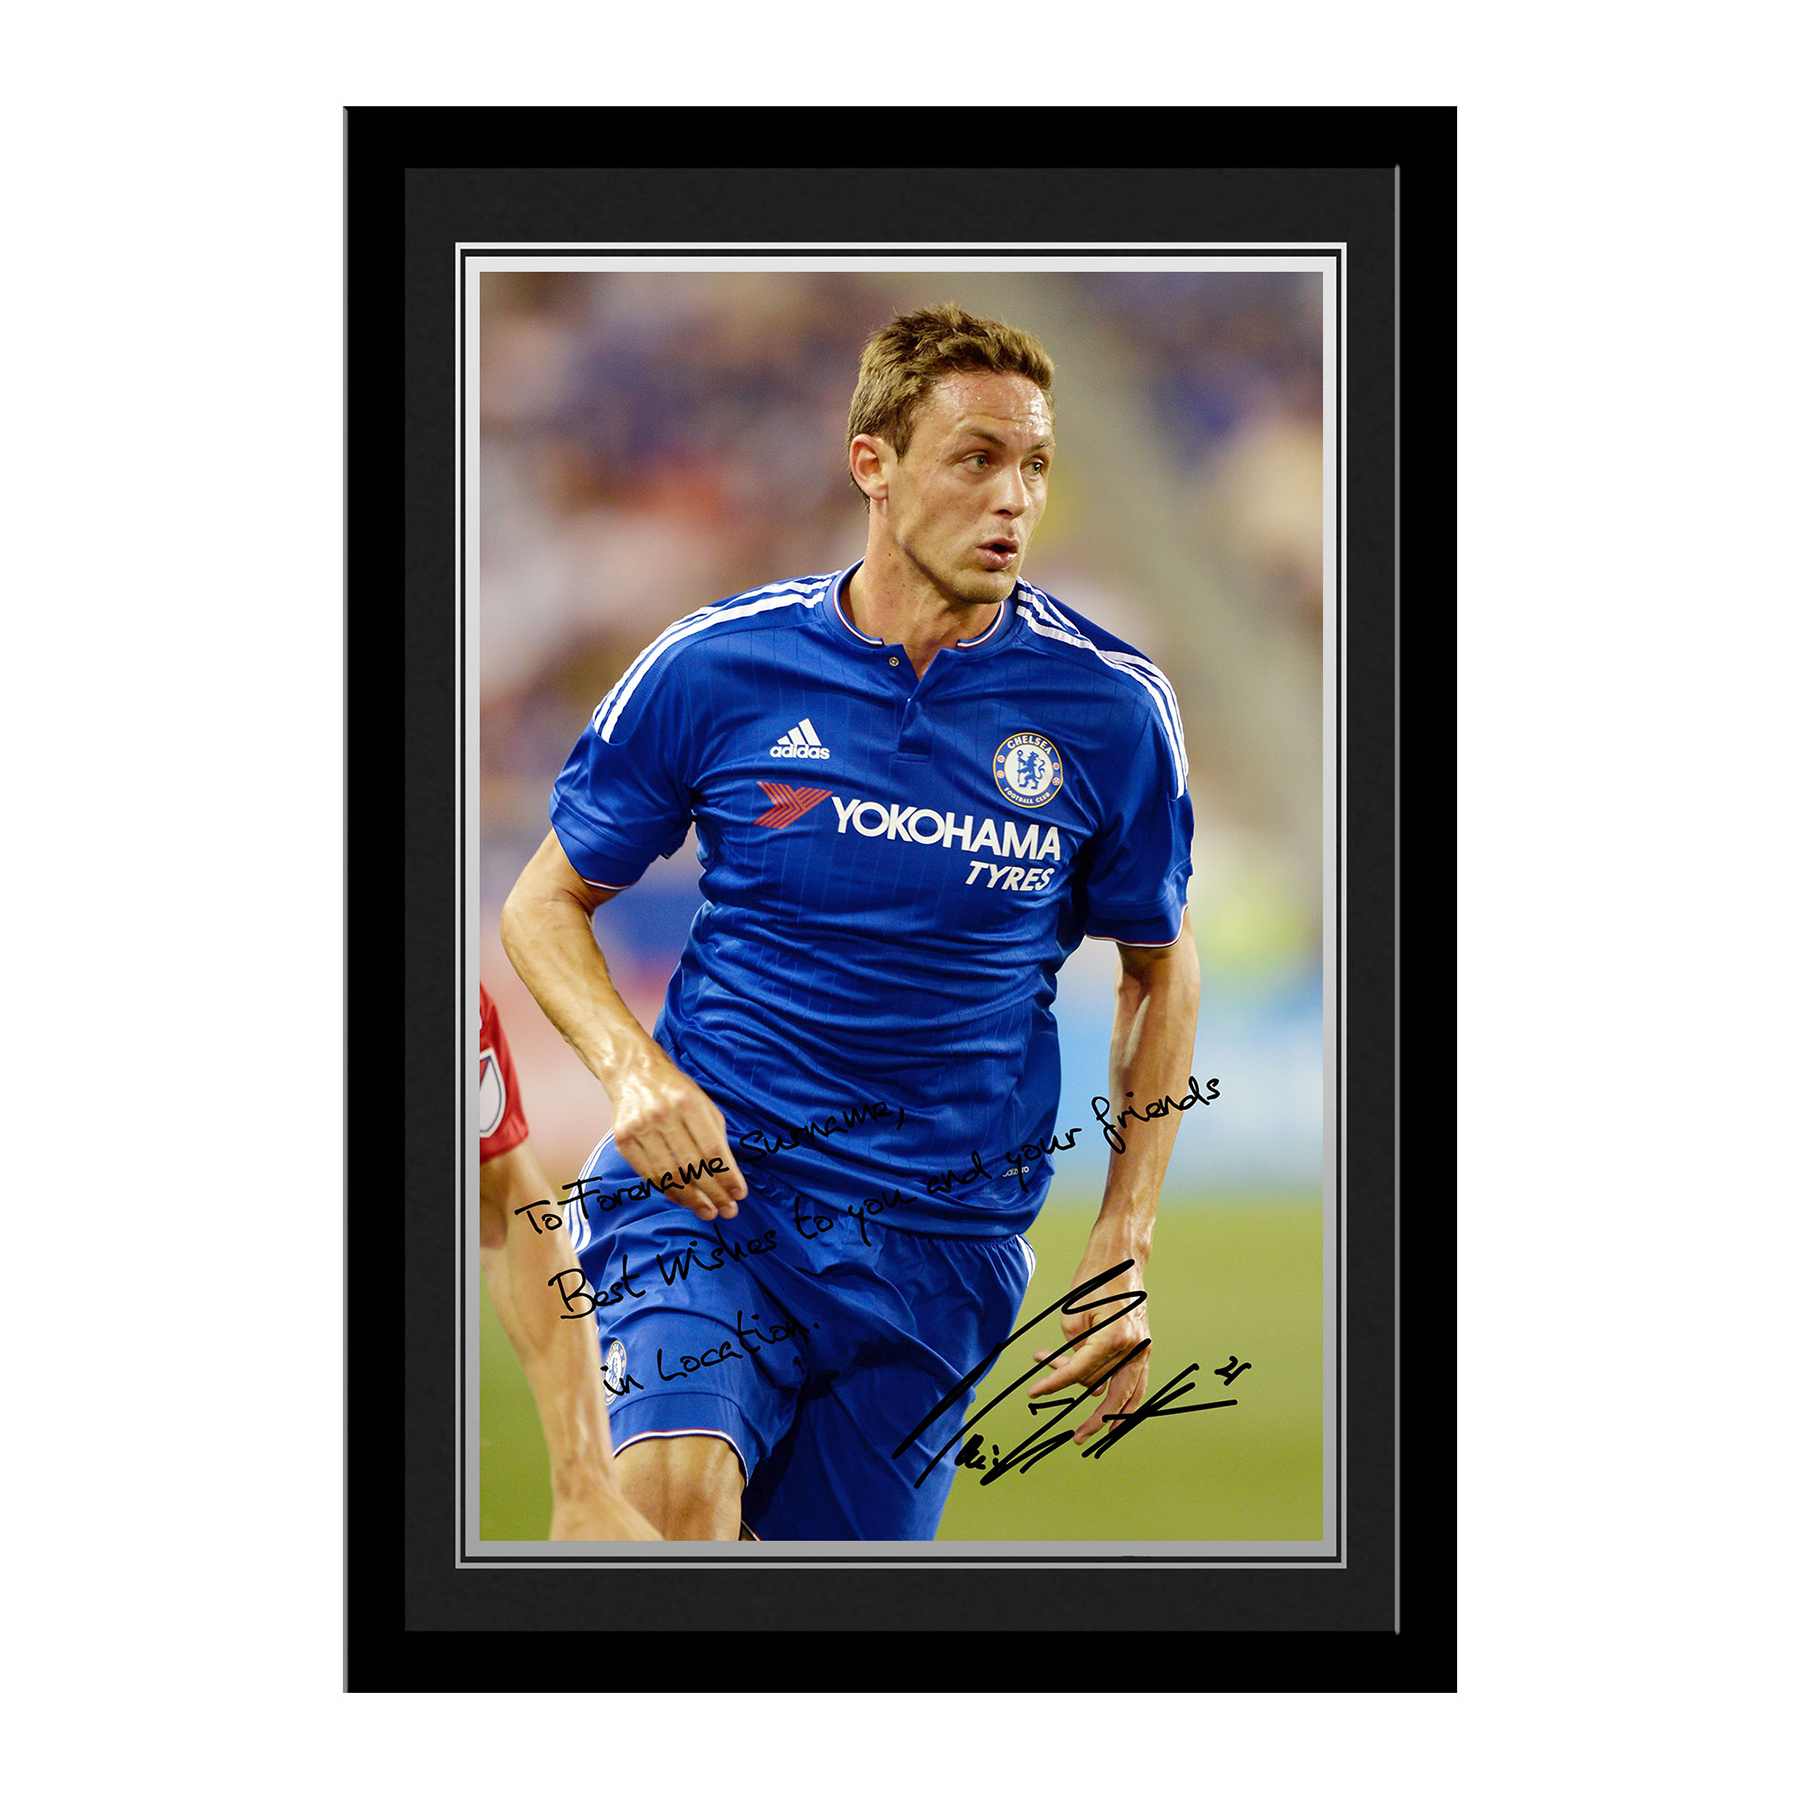 Chelsea Personalised Signature Photo Framed - Matic